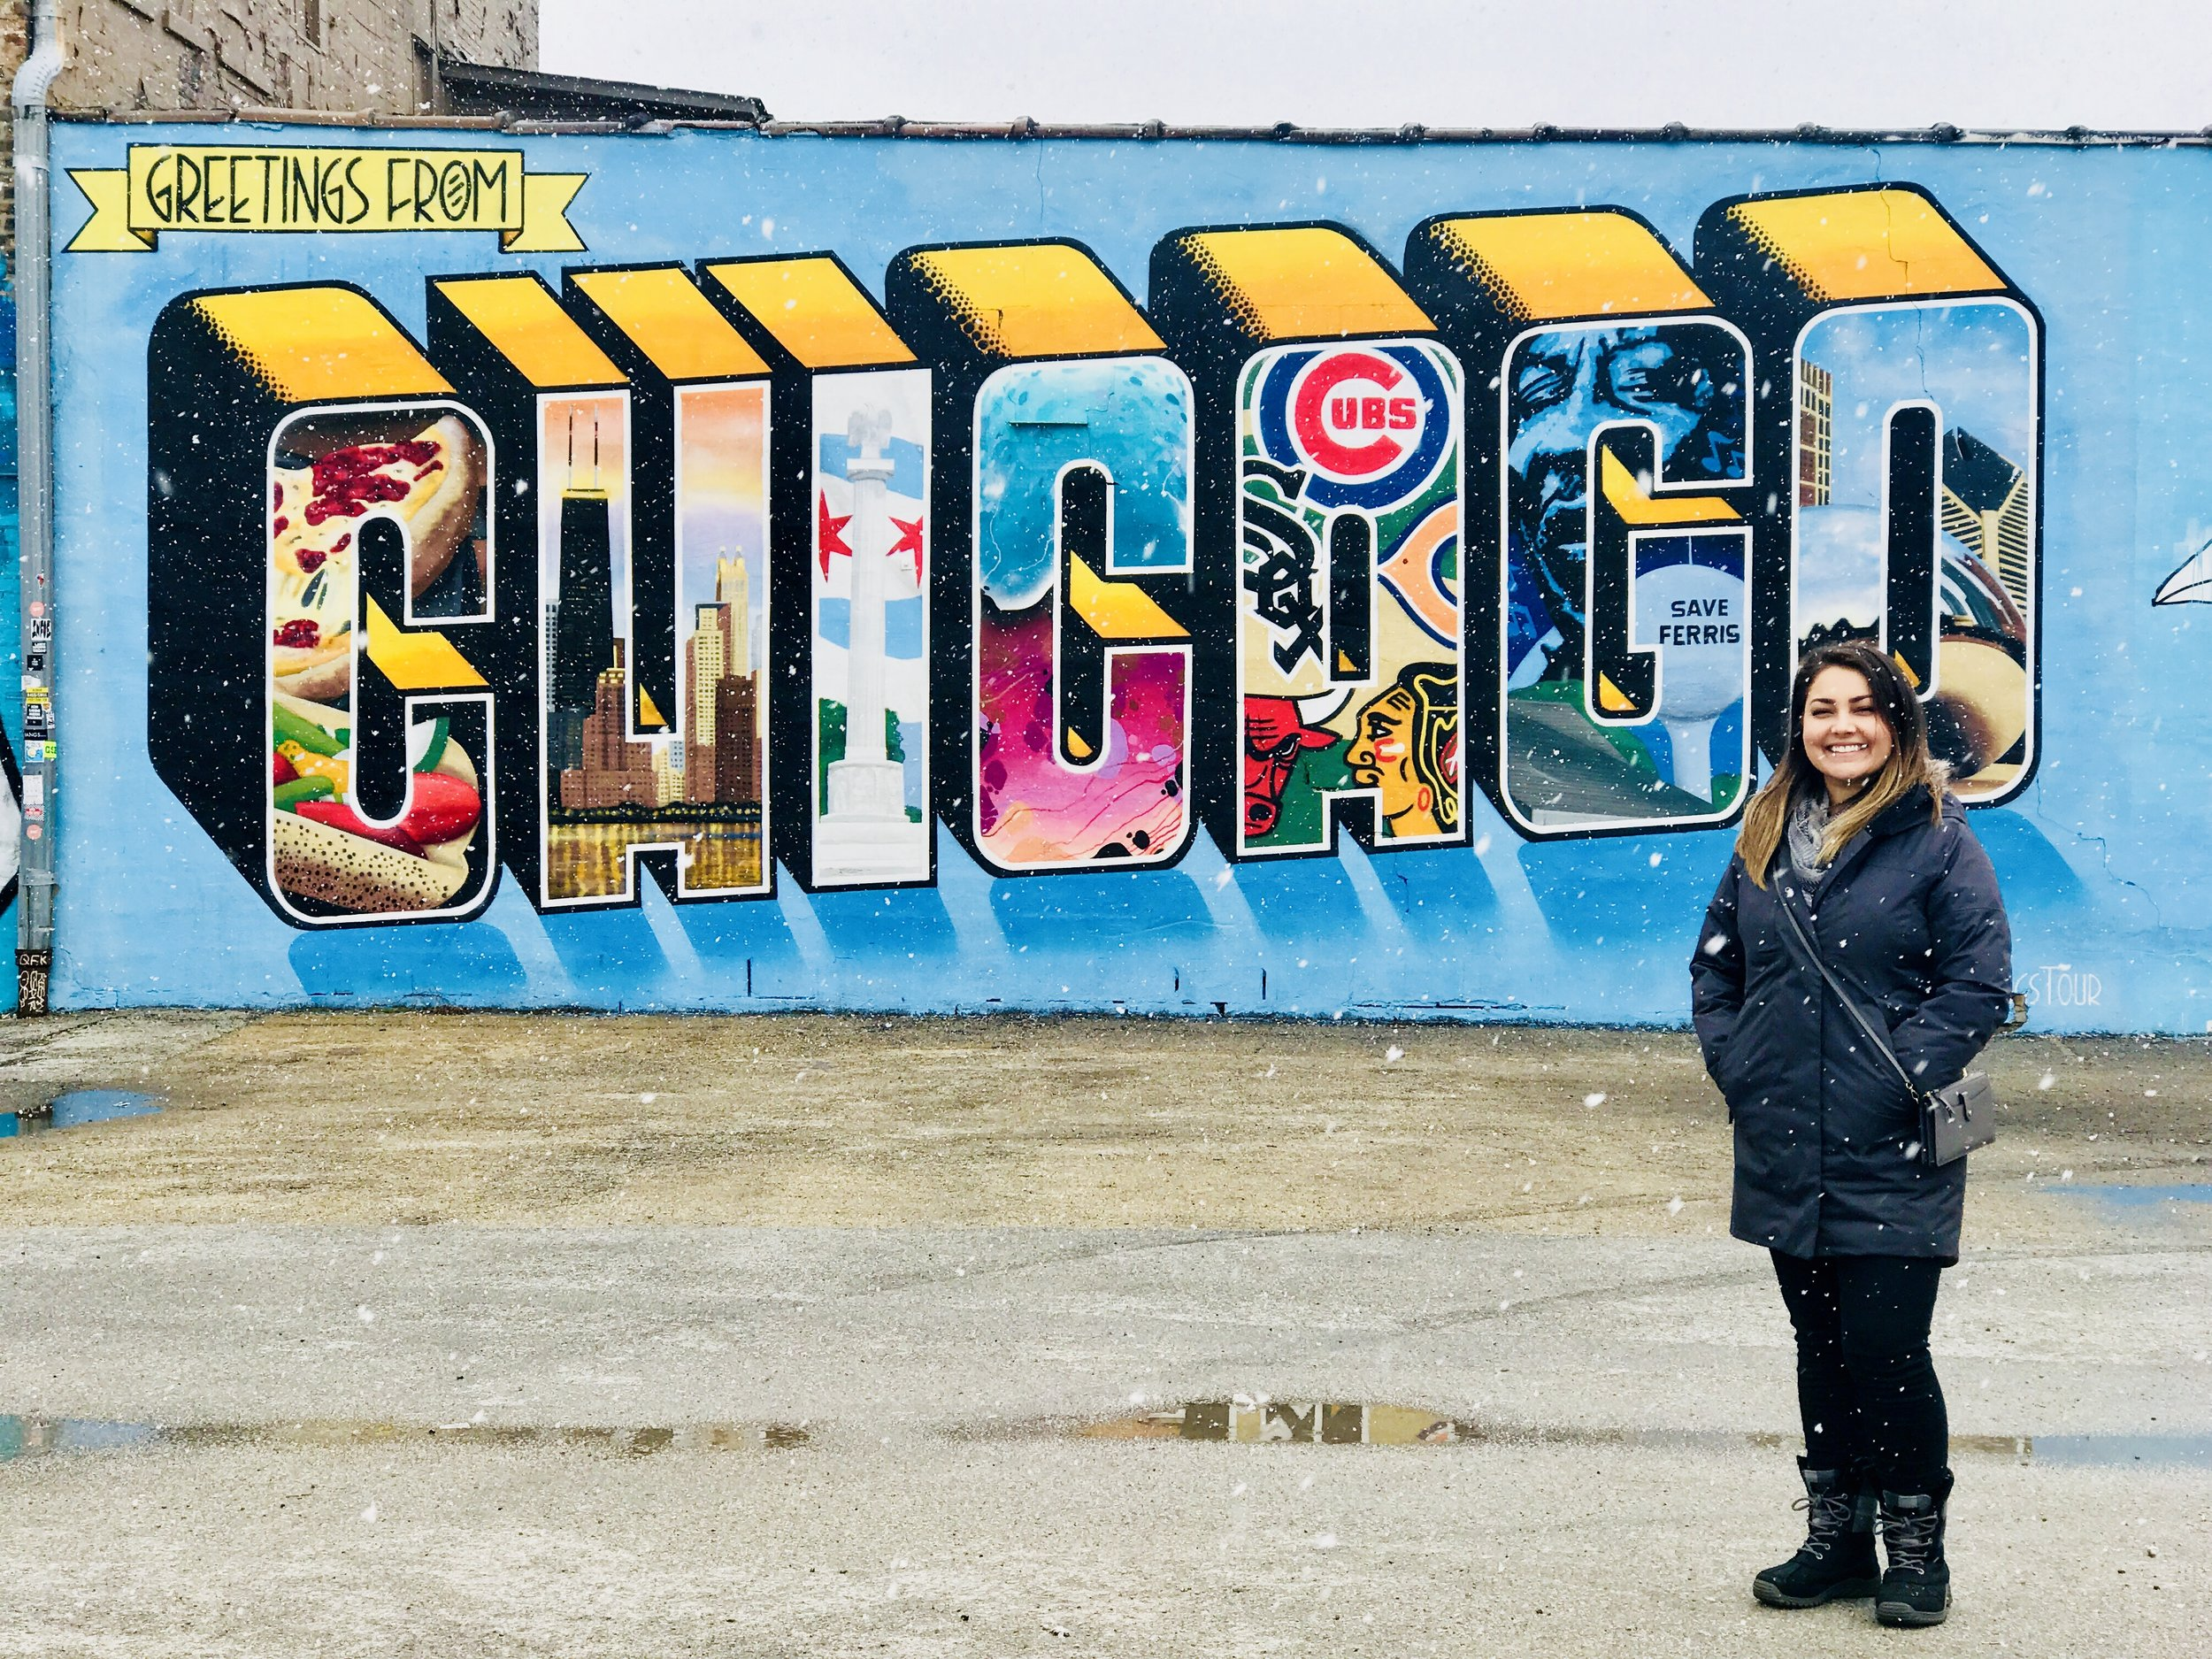 Greetings from Chicago Mural - Location: 2226 N Milwaukee Ave, Chicago, IL